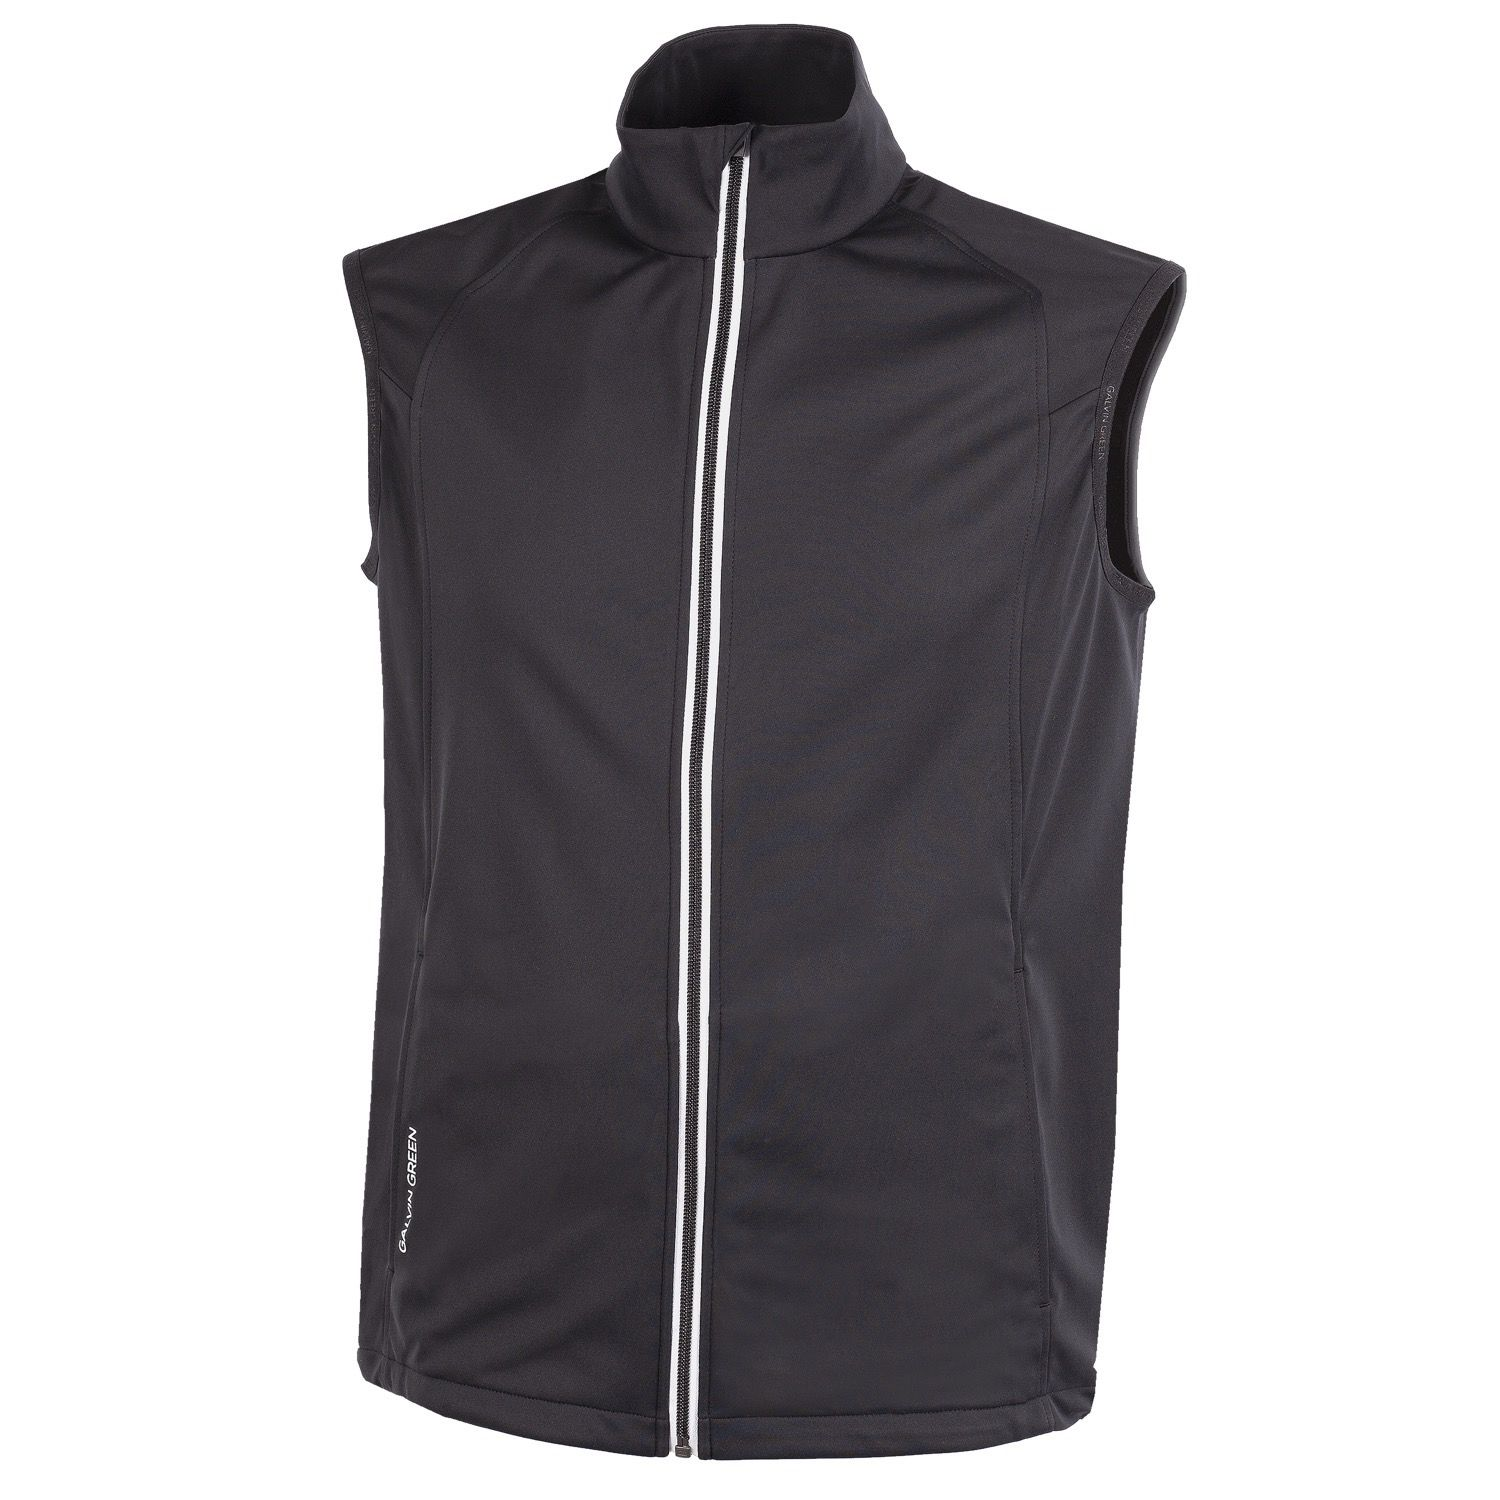 Image of Galvin Green Lionel Interface-1 Full Zip Bodywarmer